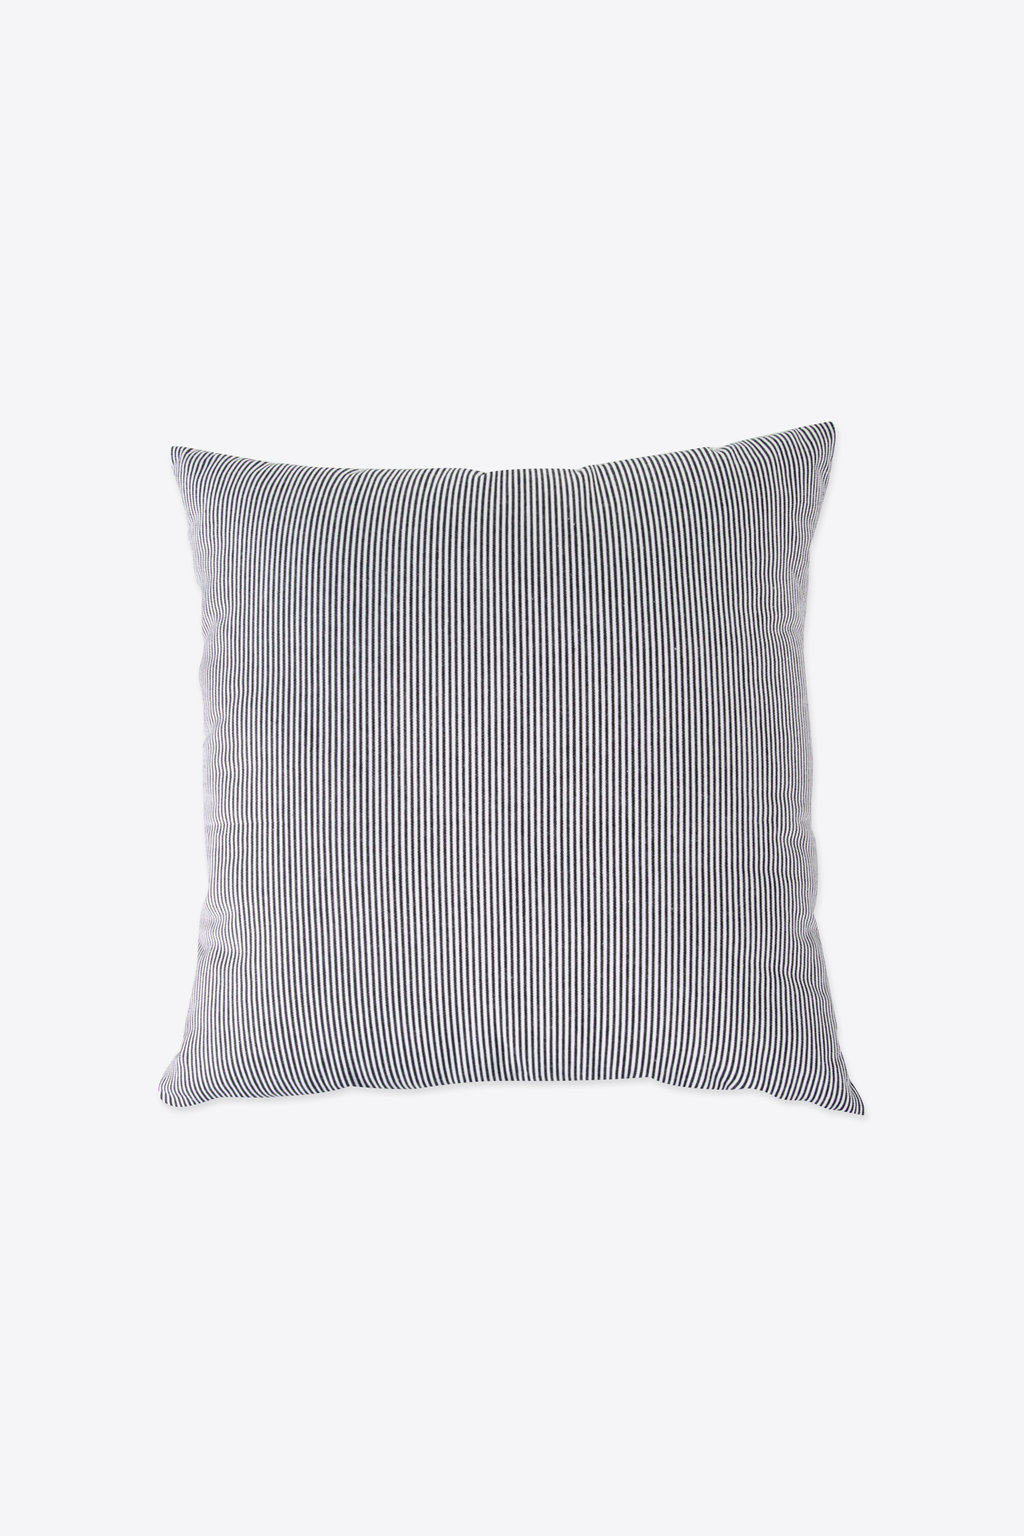 Striped Pillow 1844 Navy 1